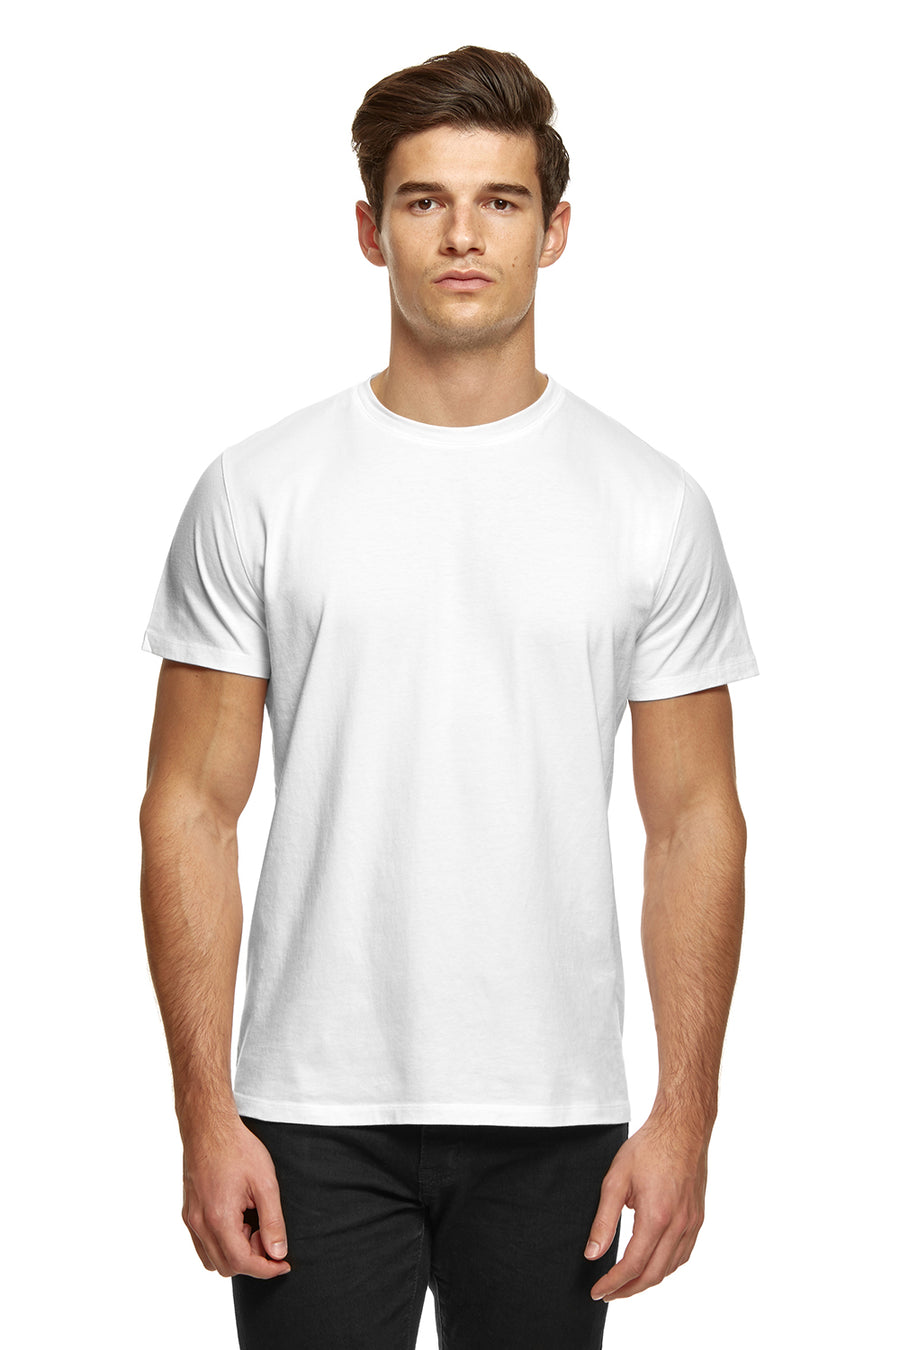 clothPROJECT men's white ethical sustainable luxury 100% cotton t-shirt with free delivery